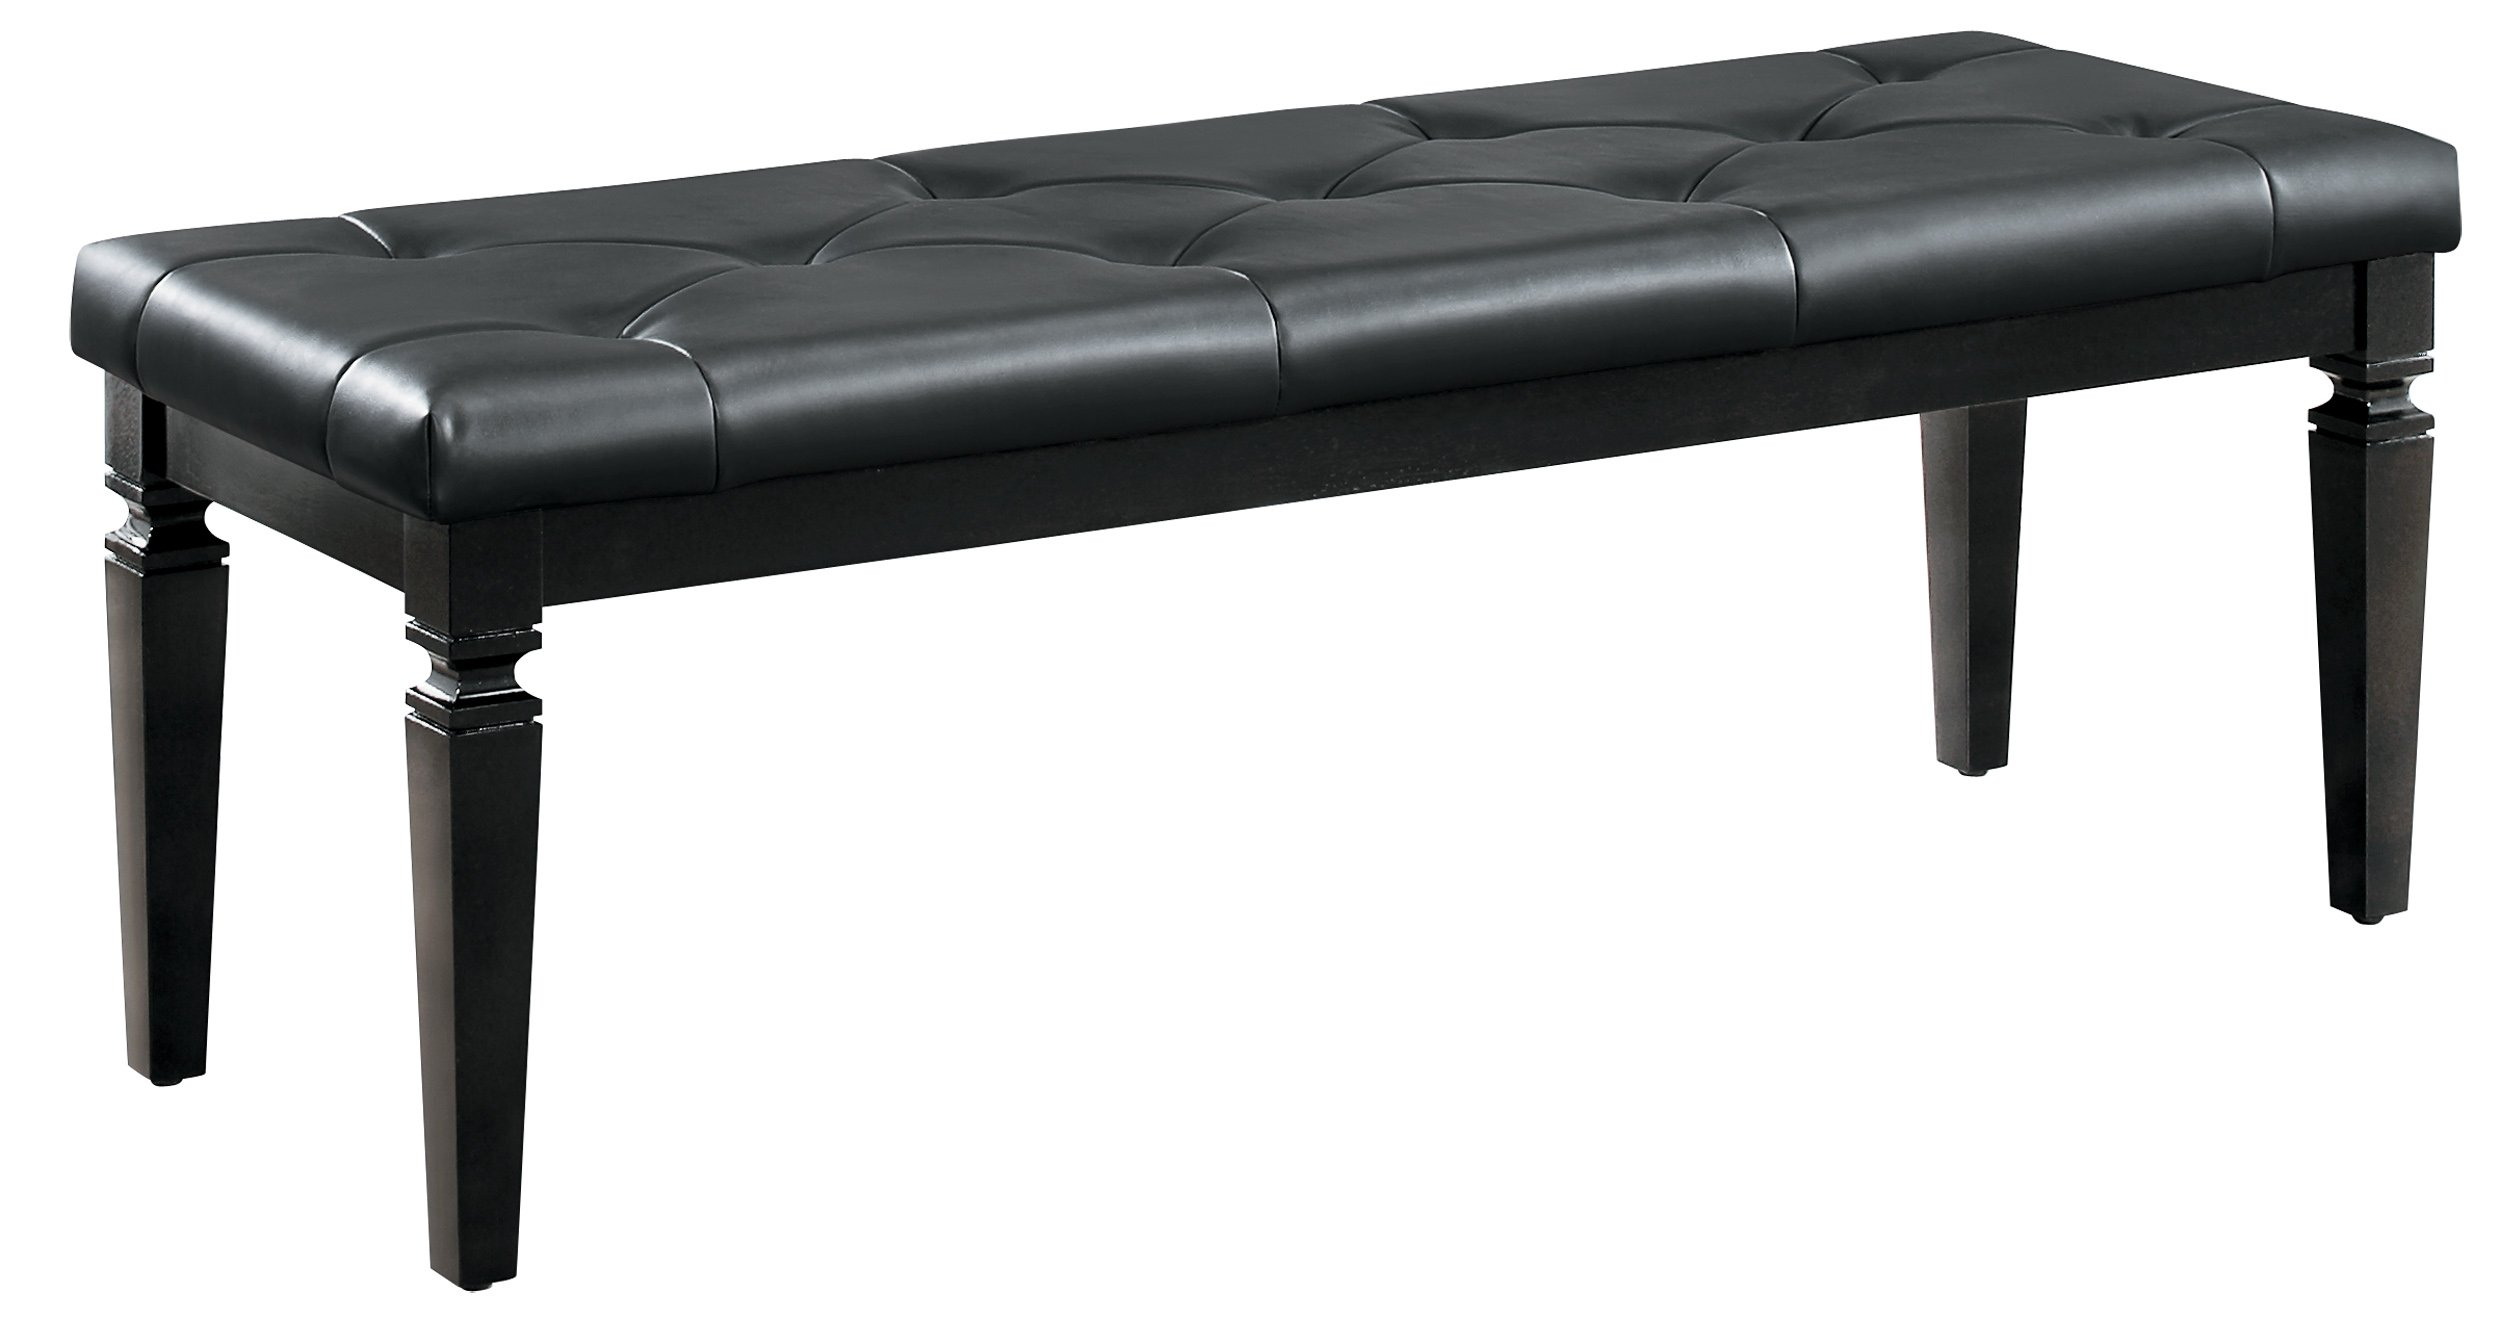 Homelegance Allura Modern Crystal Tufted Footboard Bench, Black Bi-Cast Vinyl